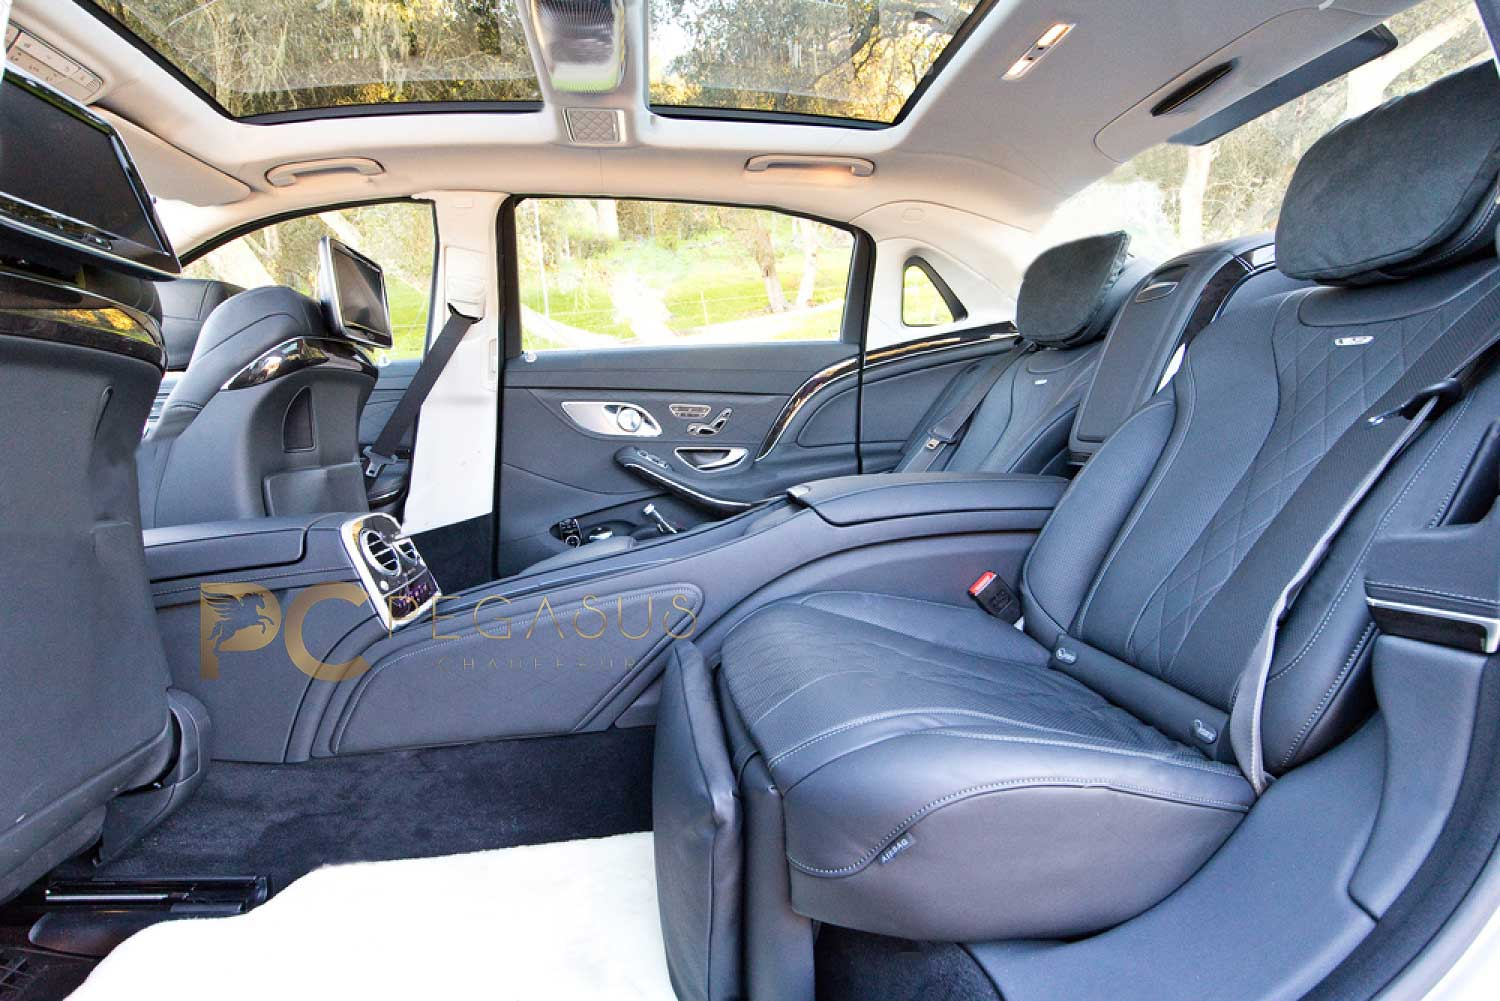 mercedes-s-class-chauffeur-iner-back-look